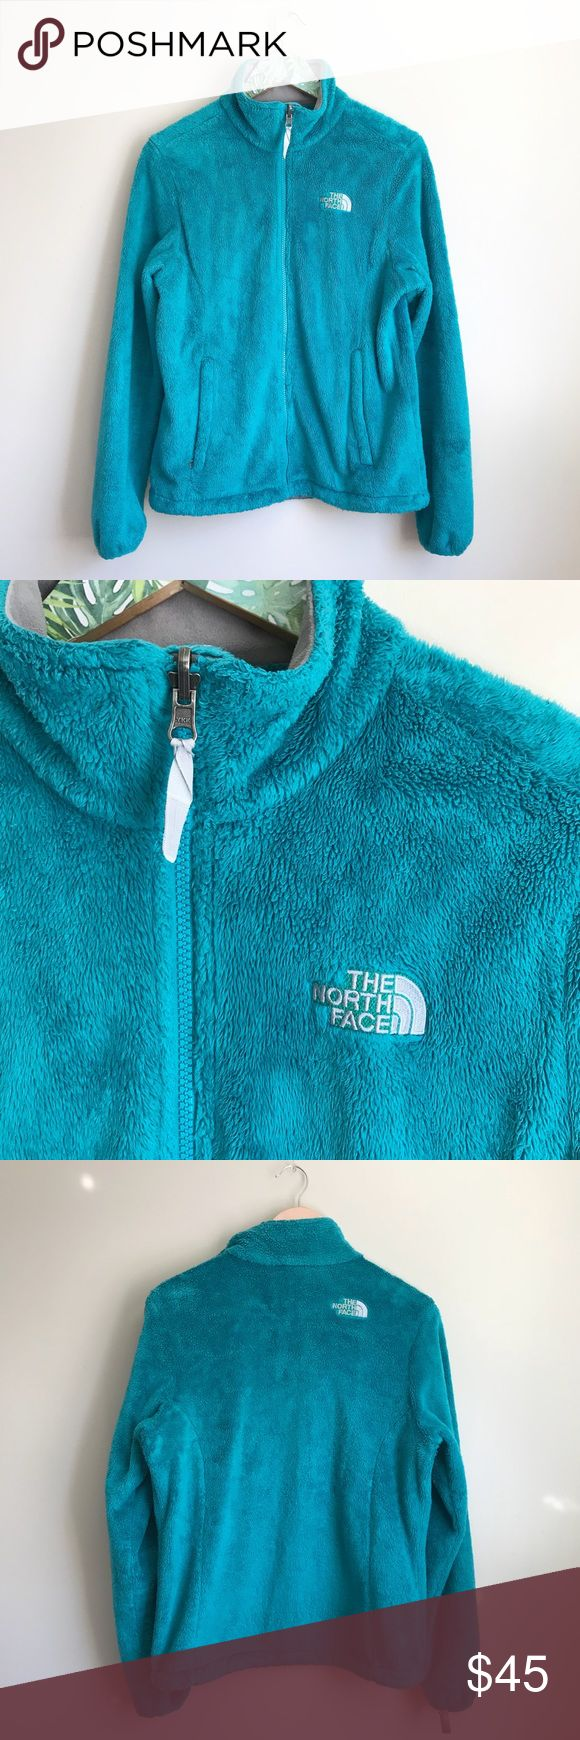 north face osito teal fuzzy soft jacket sz m north face